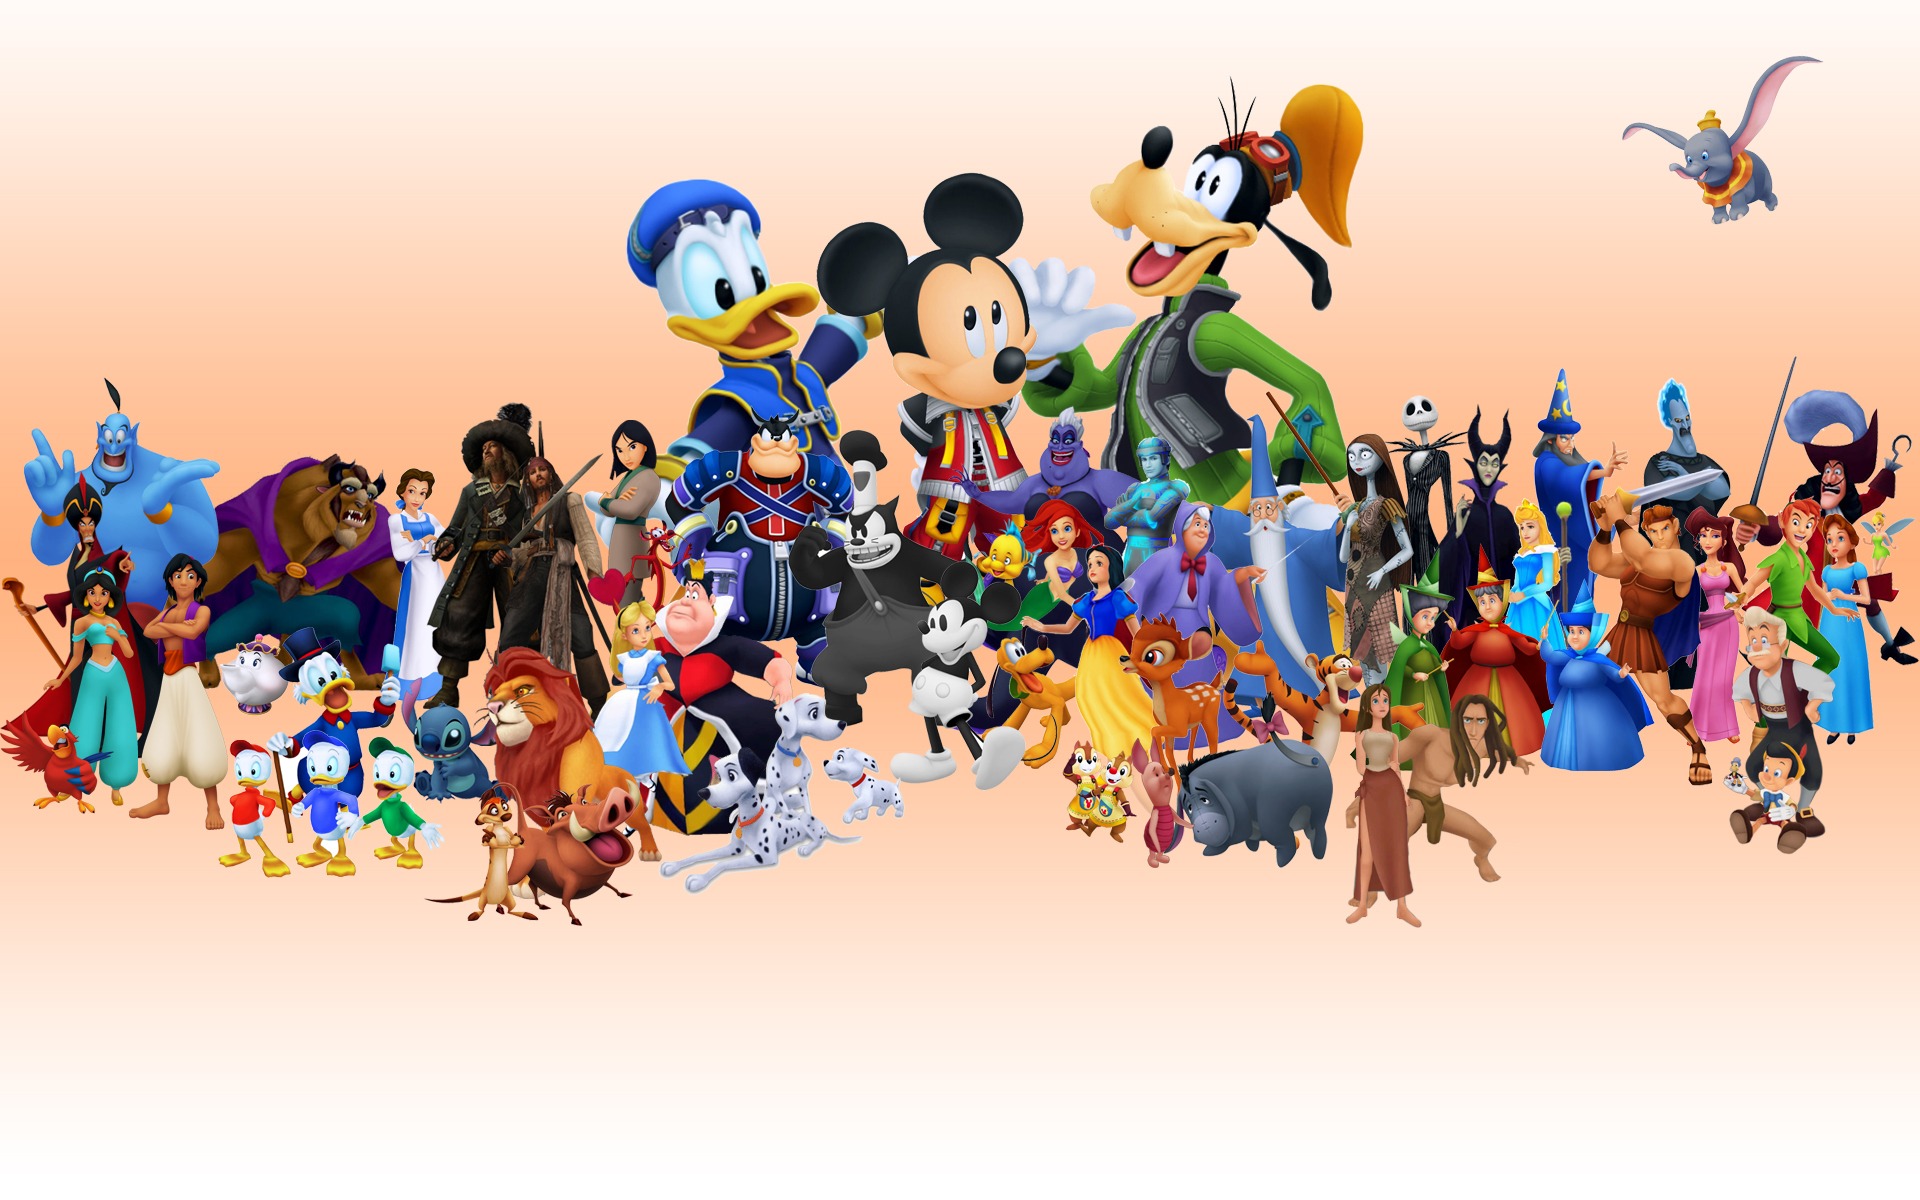 wallpaper disney games animated kickass top photos t7disney 1920x1200